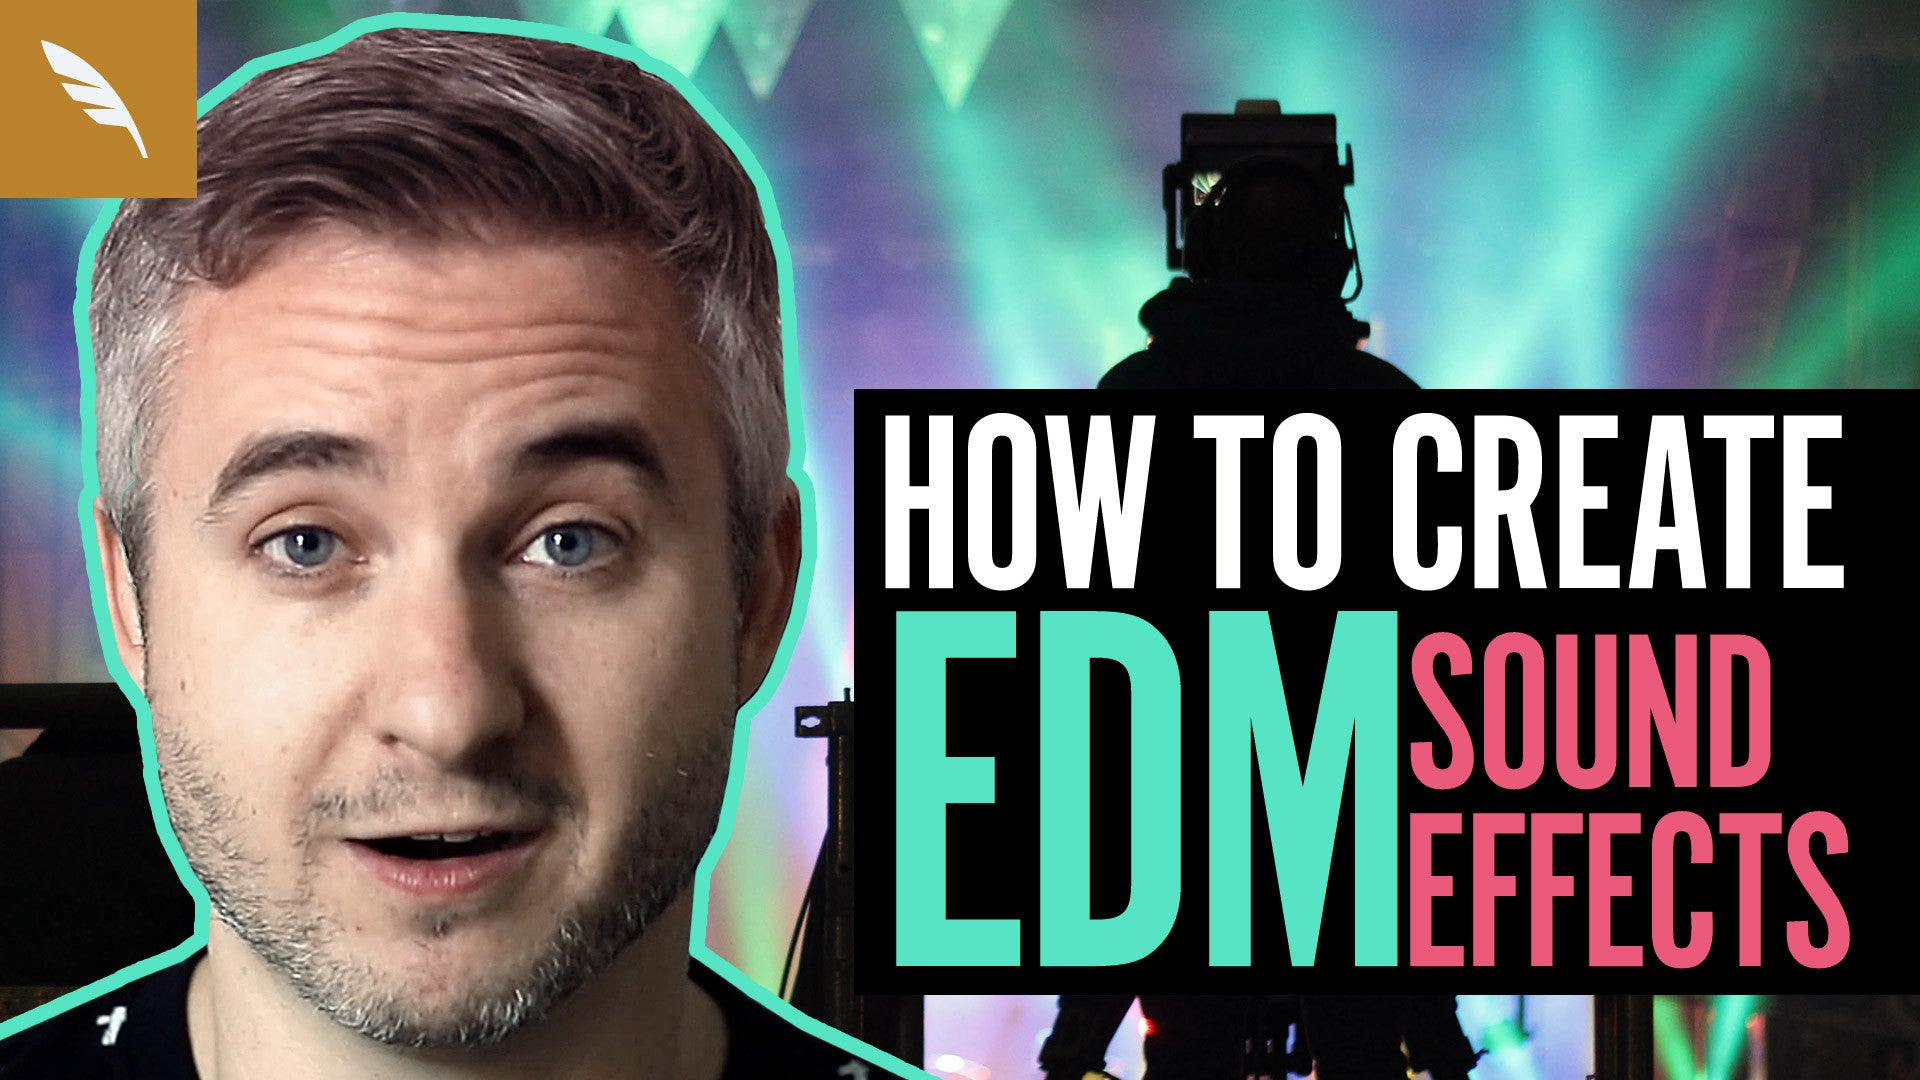 How To Create EDM Sound Effects